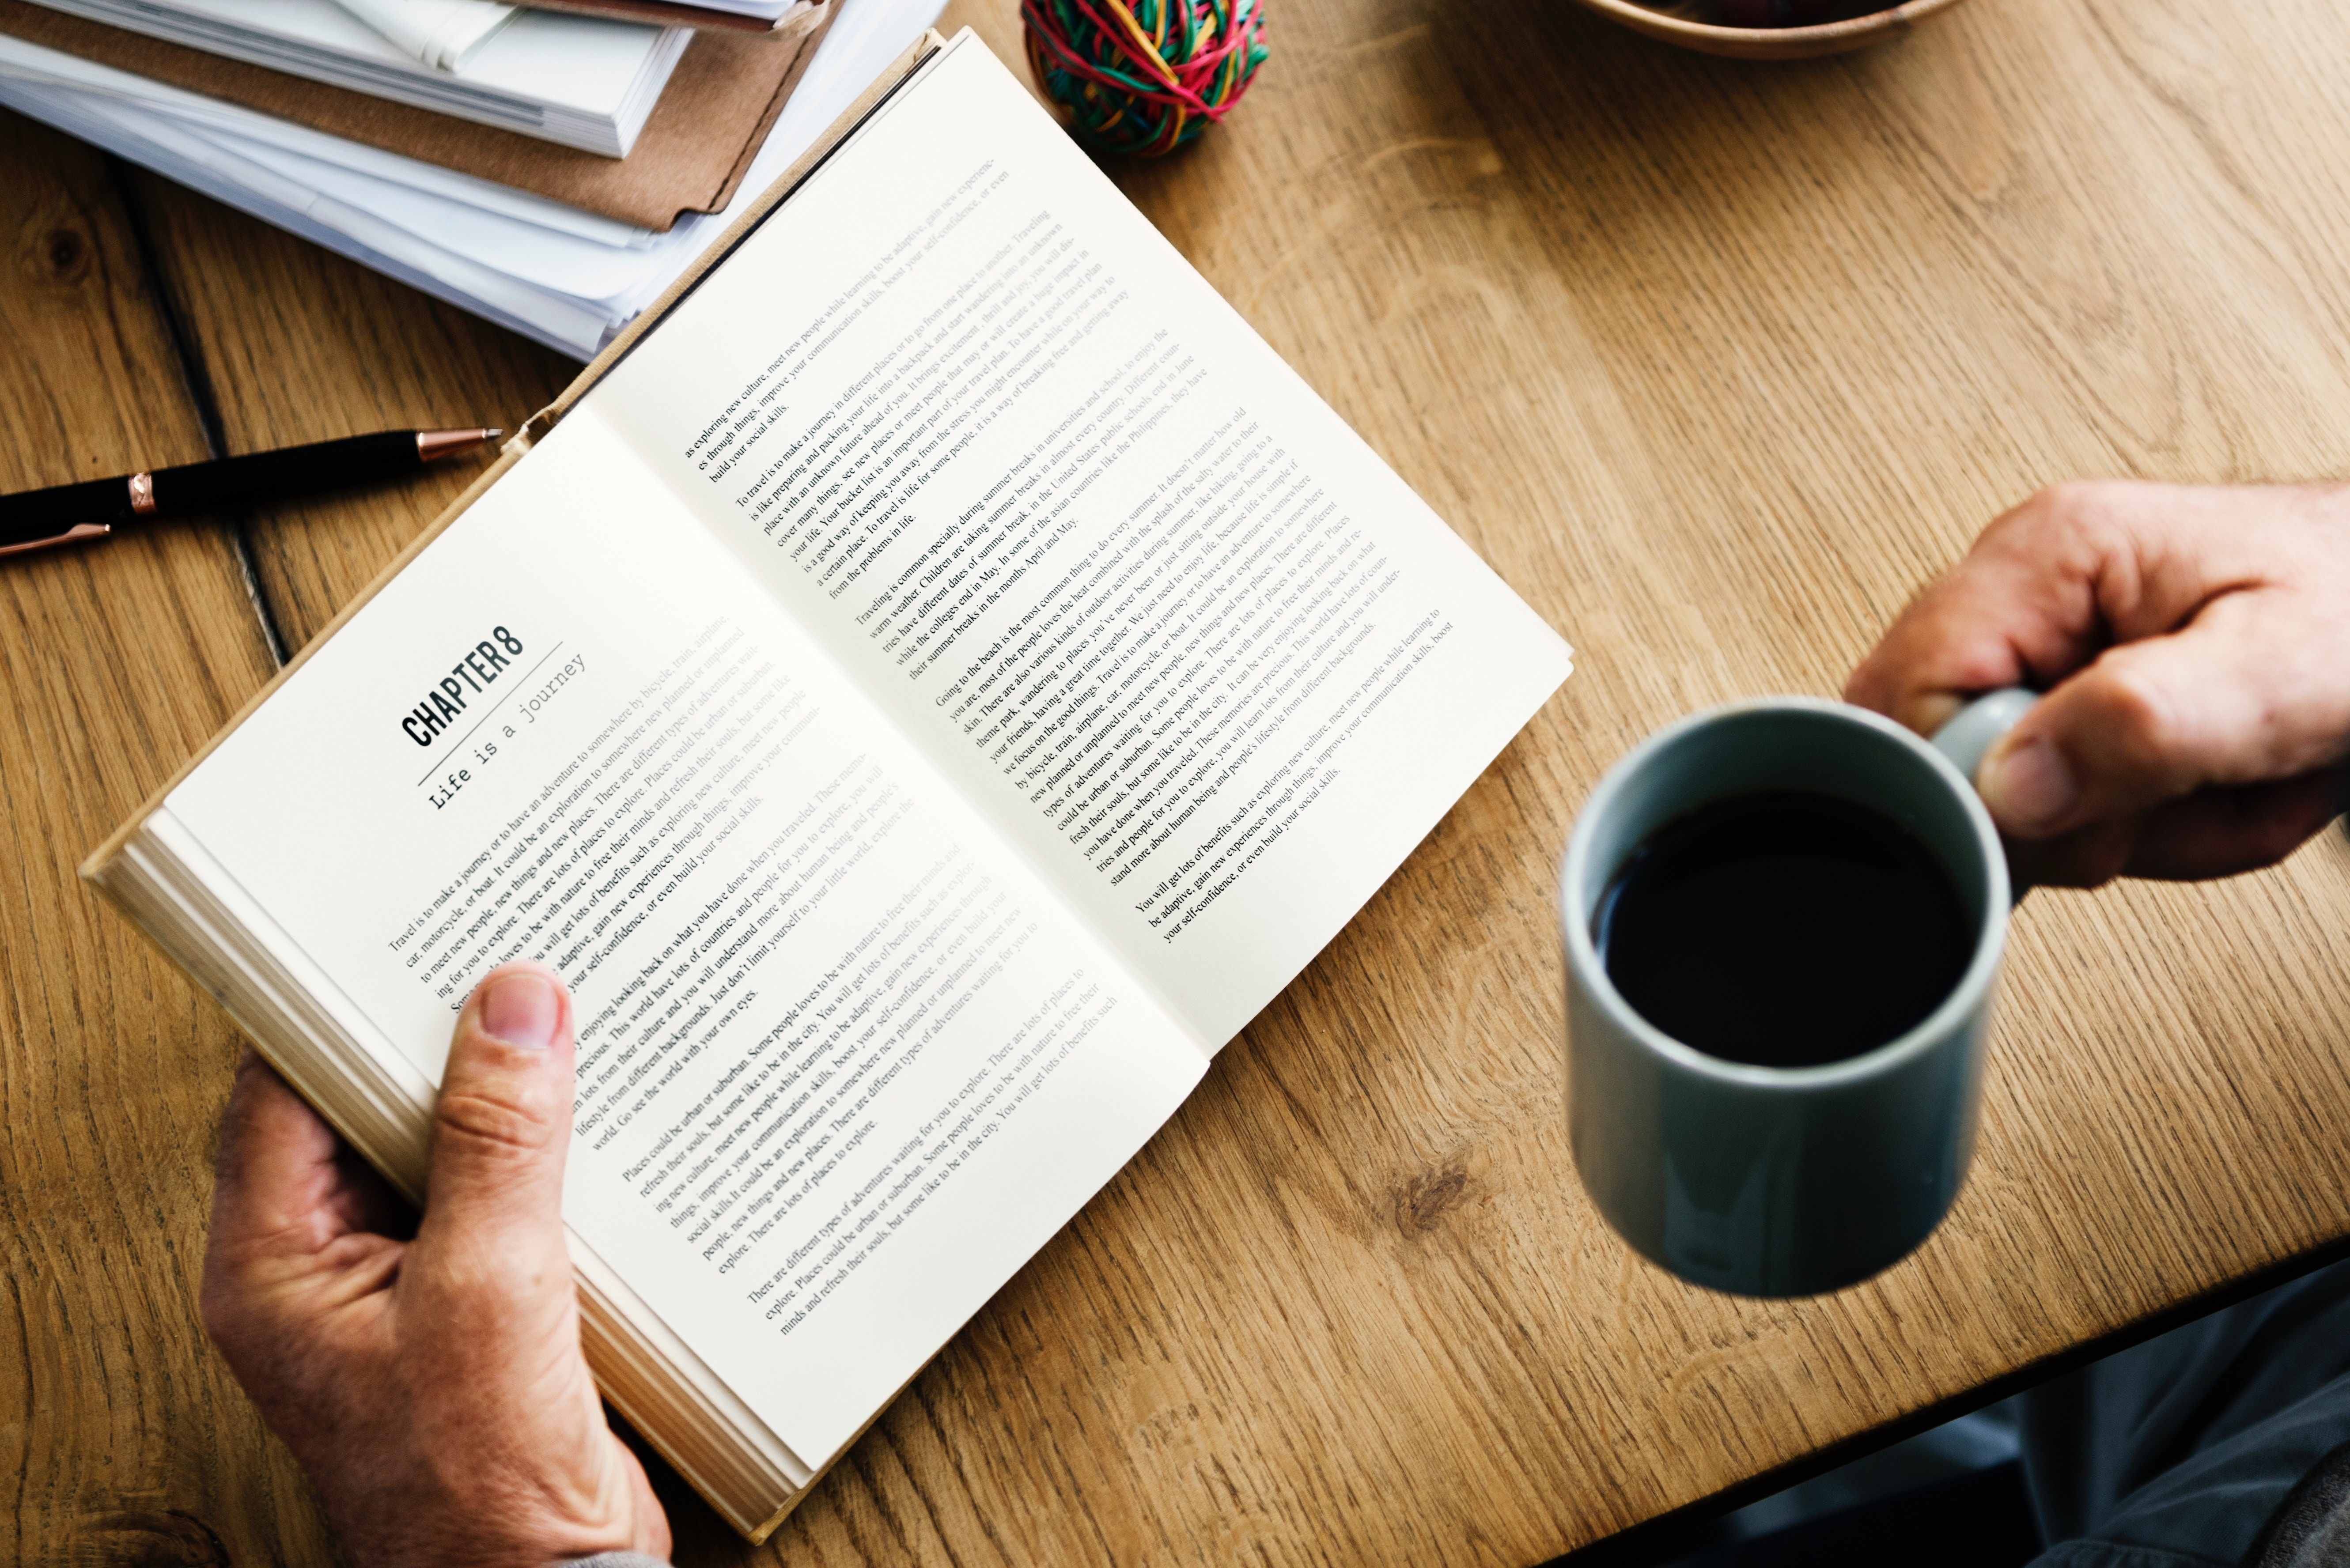 hands holding book and coffee mug